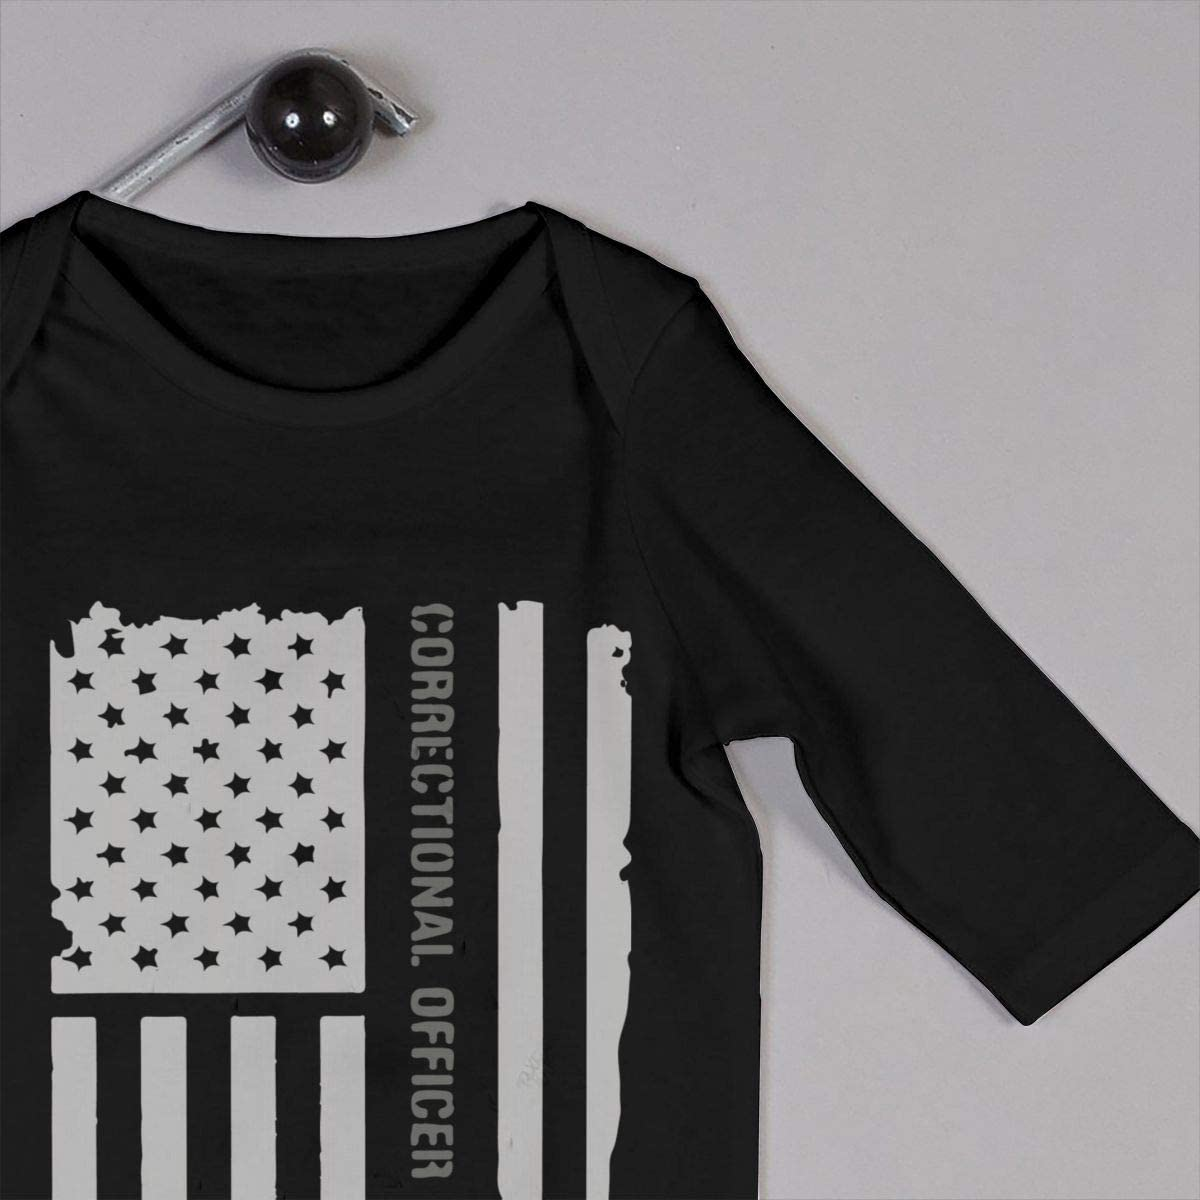 YELTY6F Thin Silver Line Correctional Officer Printed Boys Girls One-Piece Suit Long Sleeve Pajamas Black